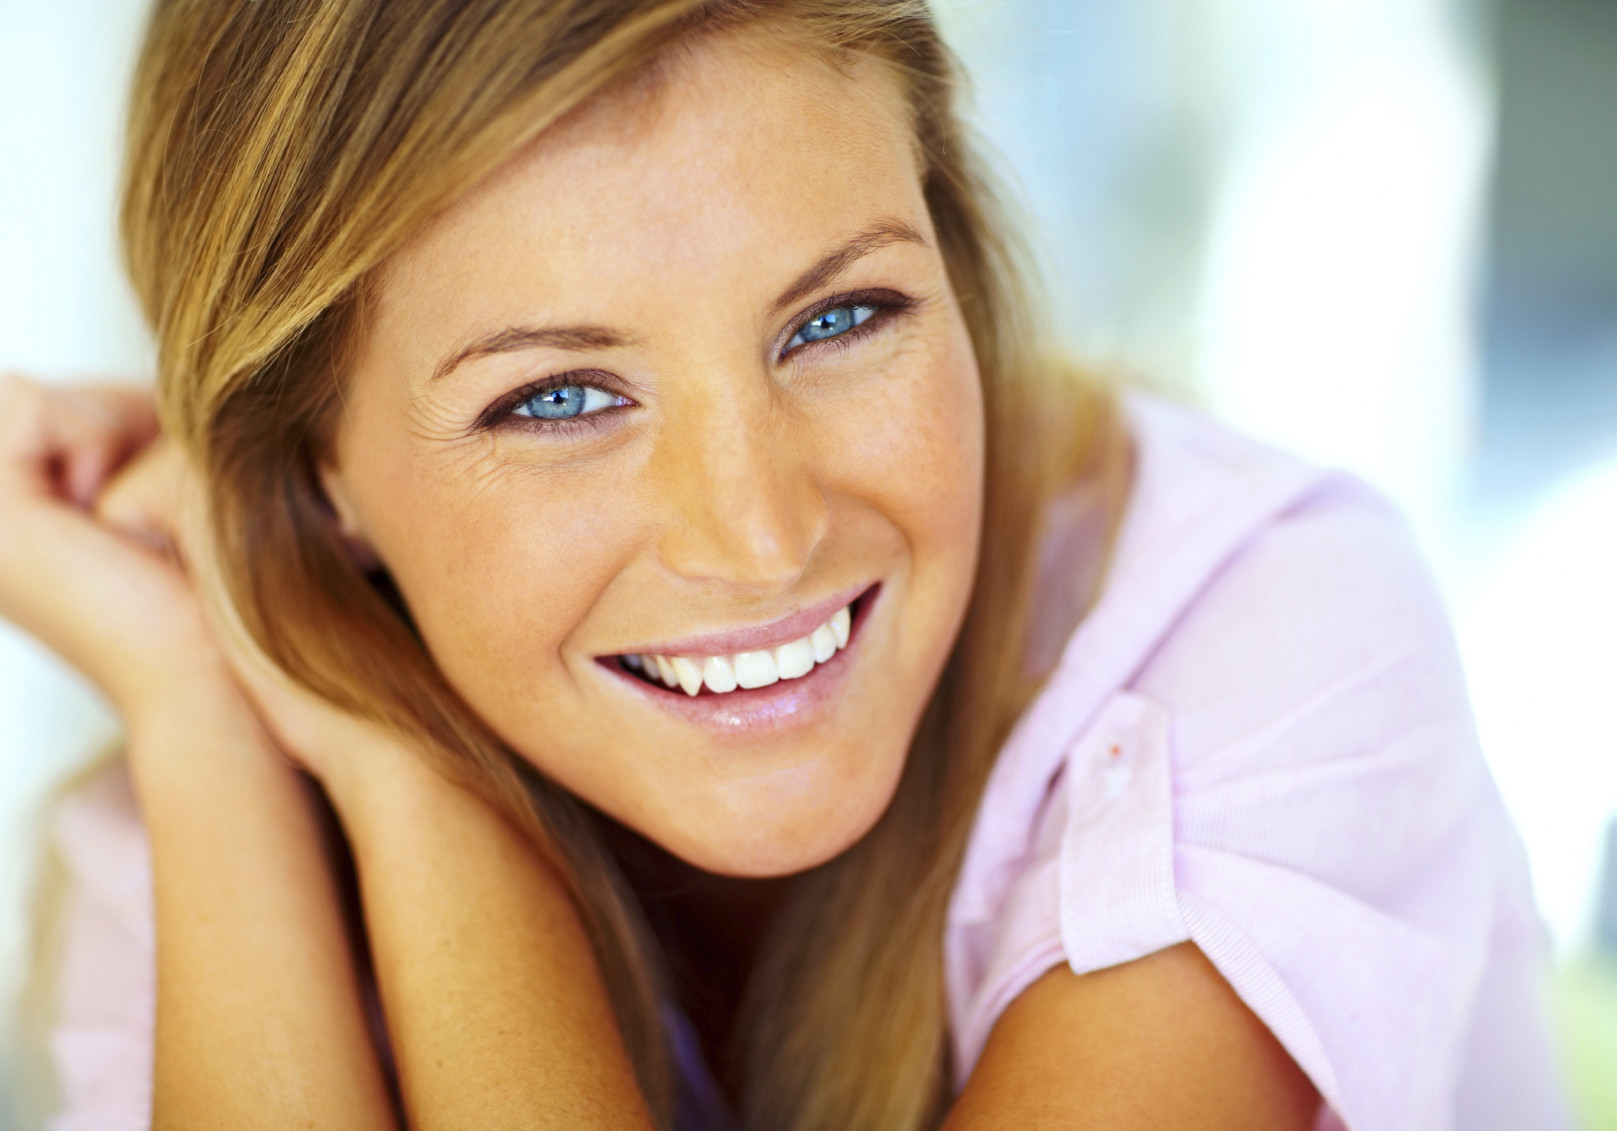 Closeup portrait of an attractive young woman posing